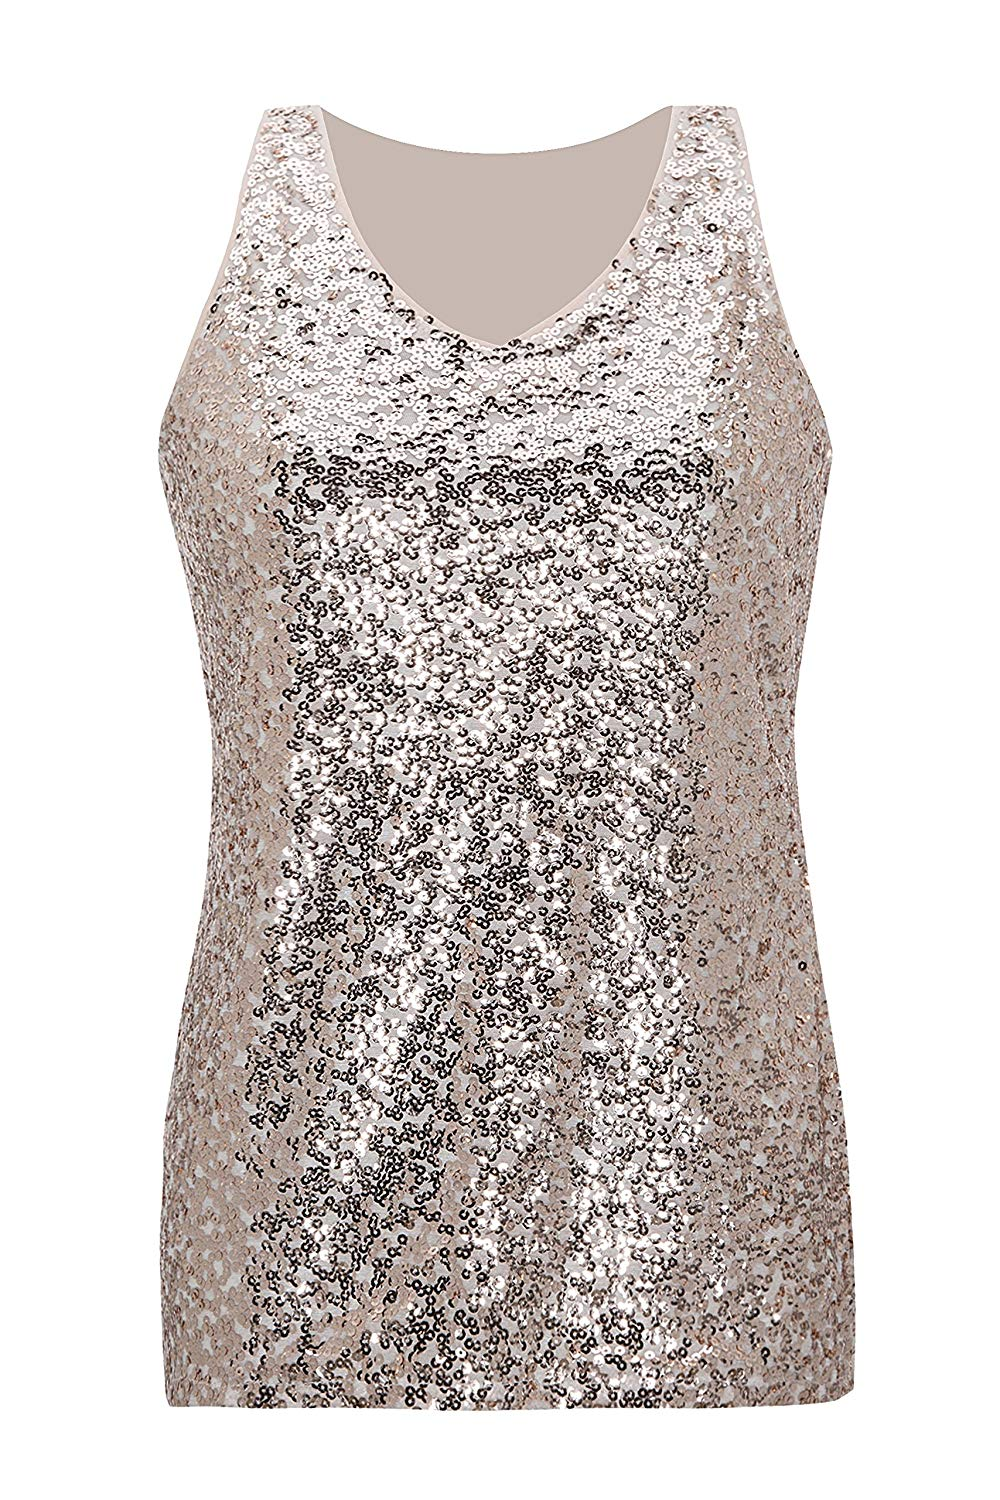 163b7c4b53946a Get Quotations · Metme Sleeveless Shirt V Neck Sequin Embellished  Close-Fitting Tank Tops Vest Tops